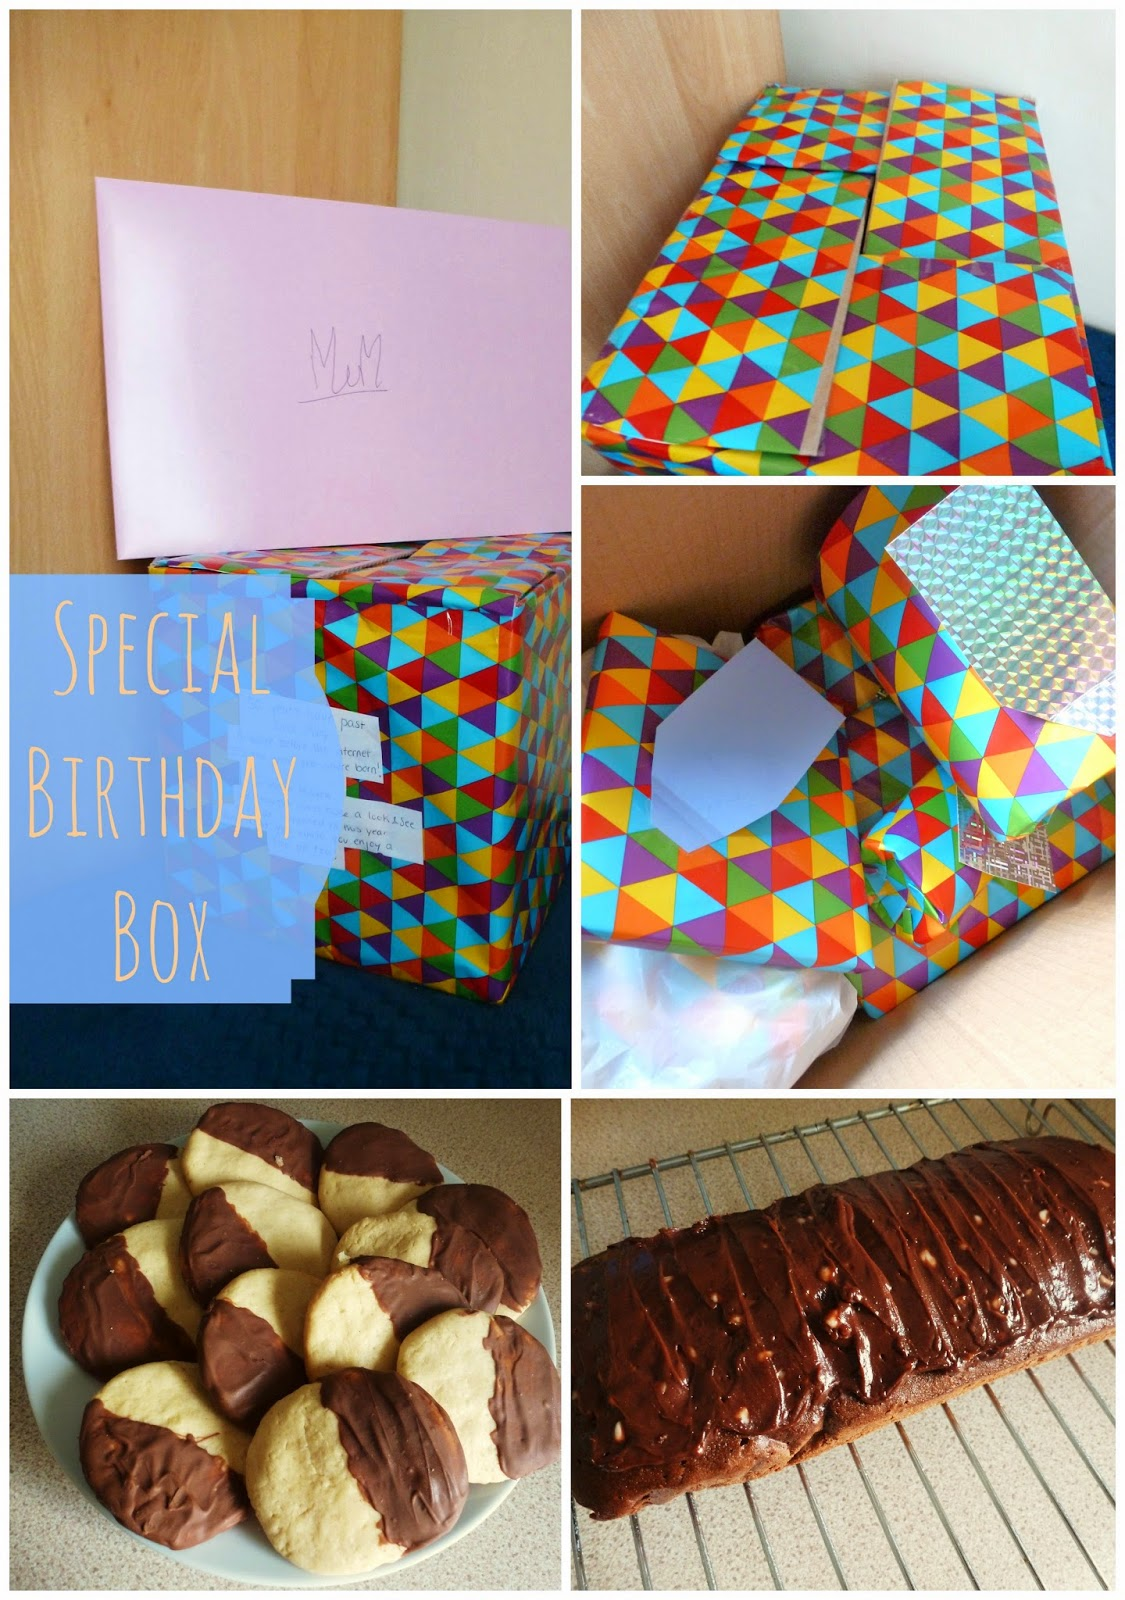 Special birthday box, present gift idea, for parents and grandparents